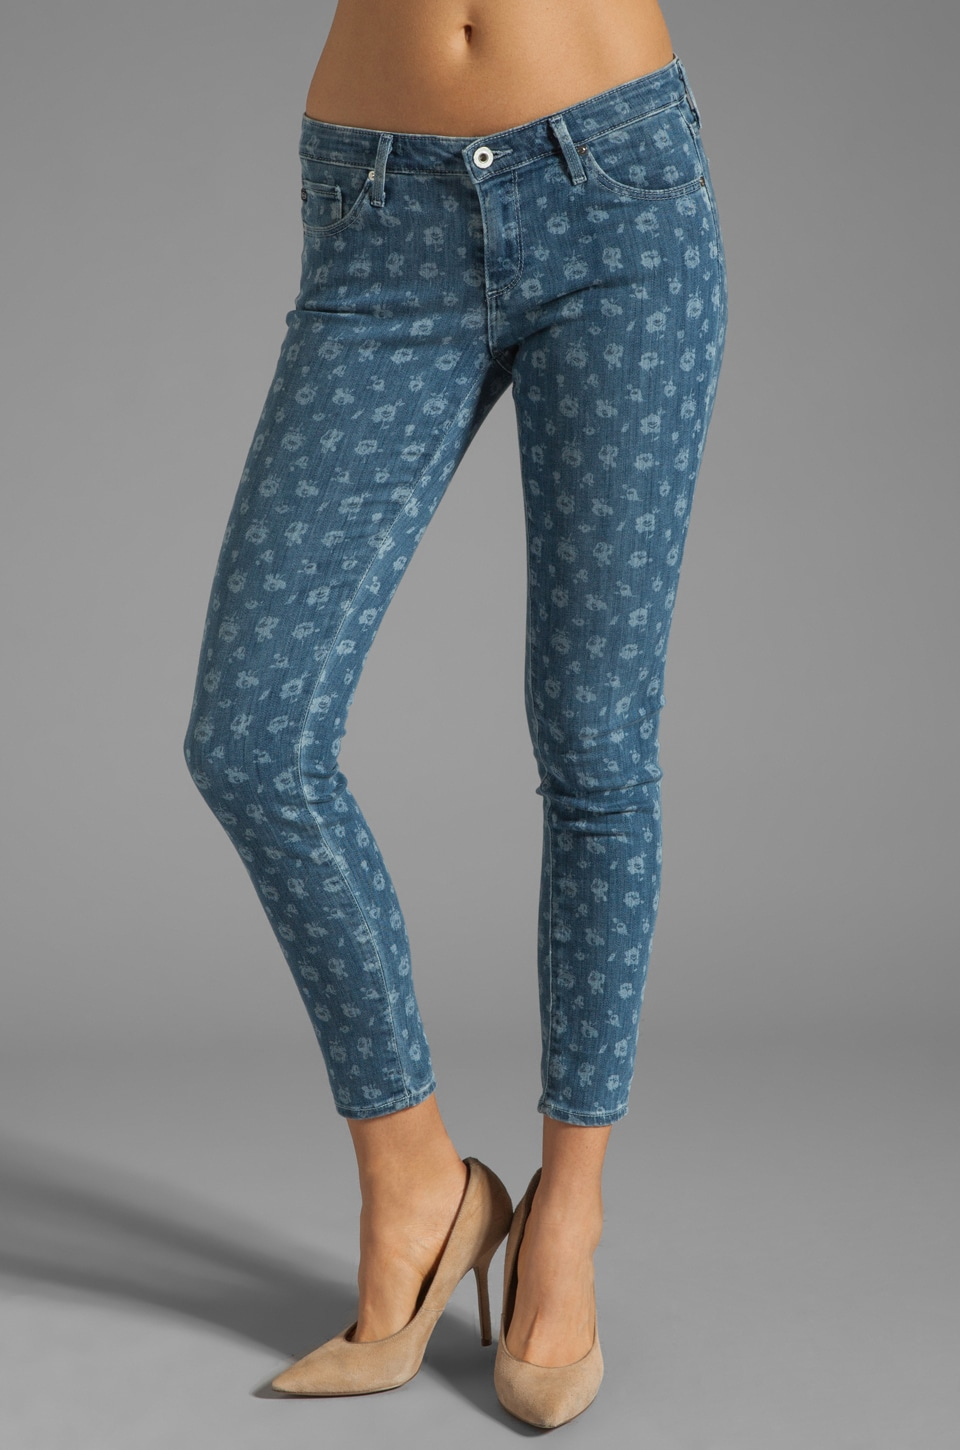 AG Adriano Goldschmied The Legging Ankle Jean in Bianca